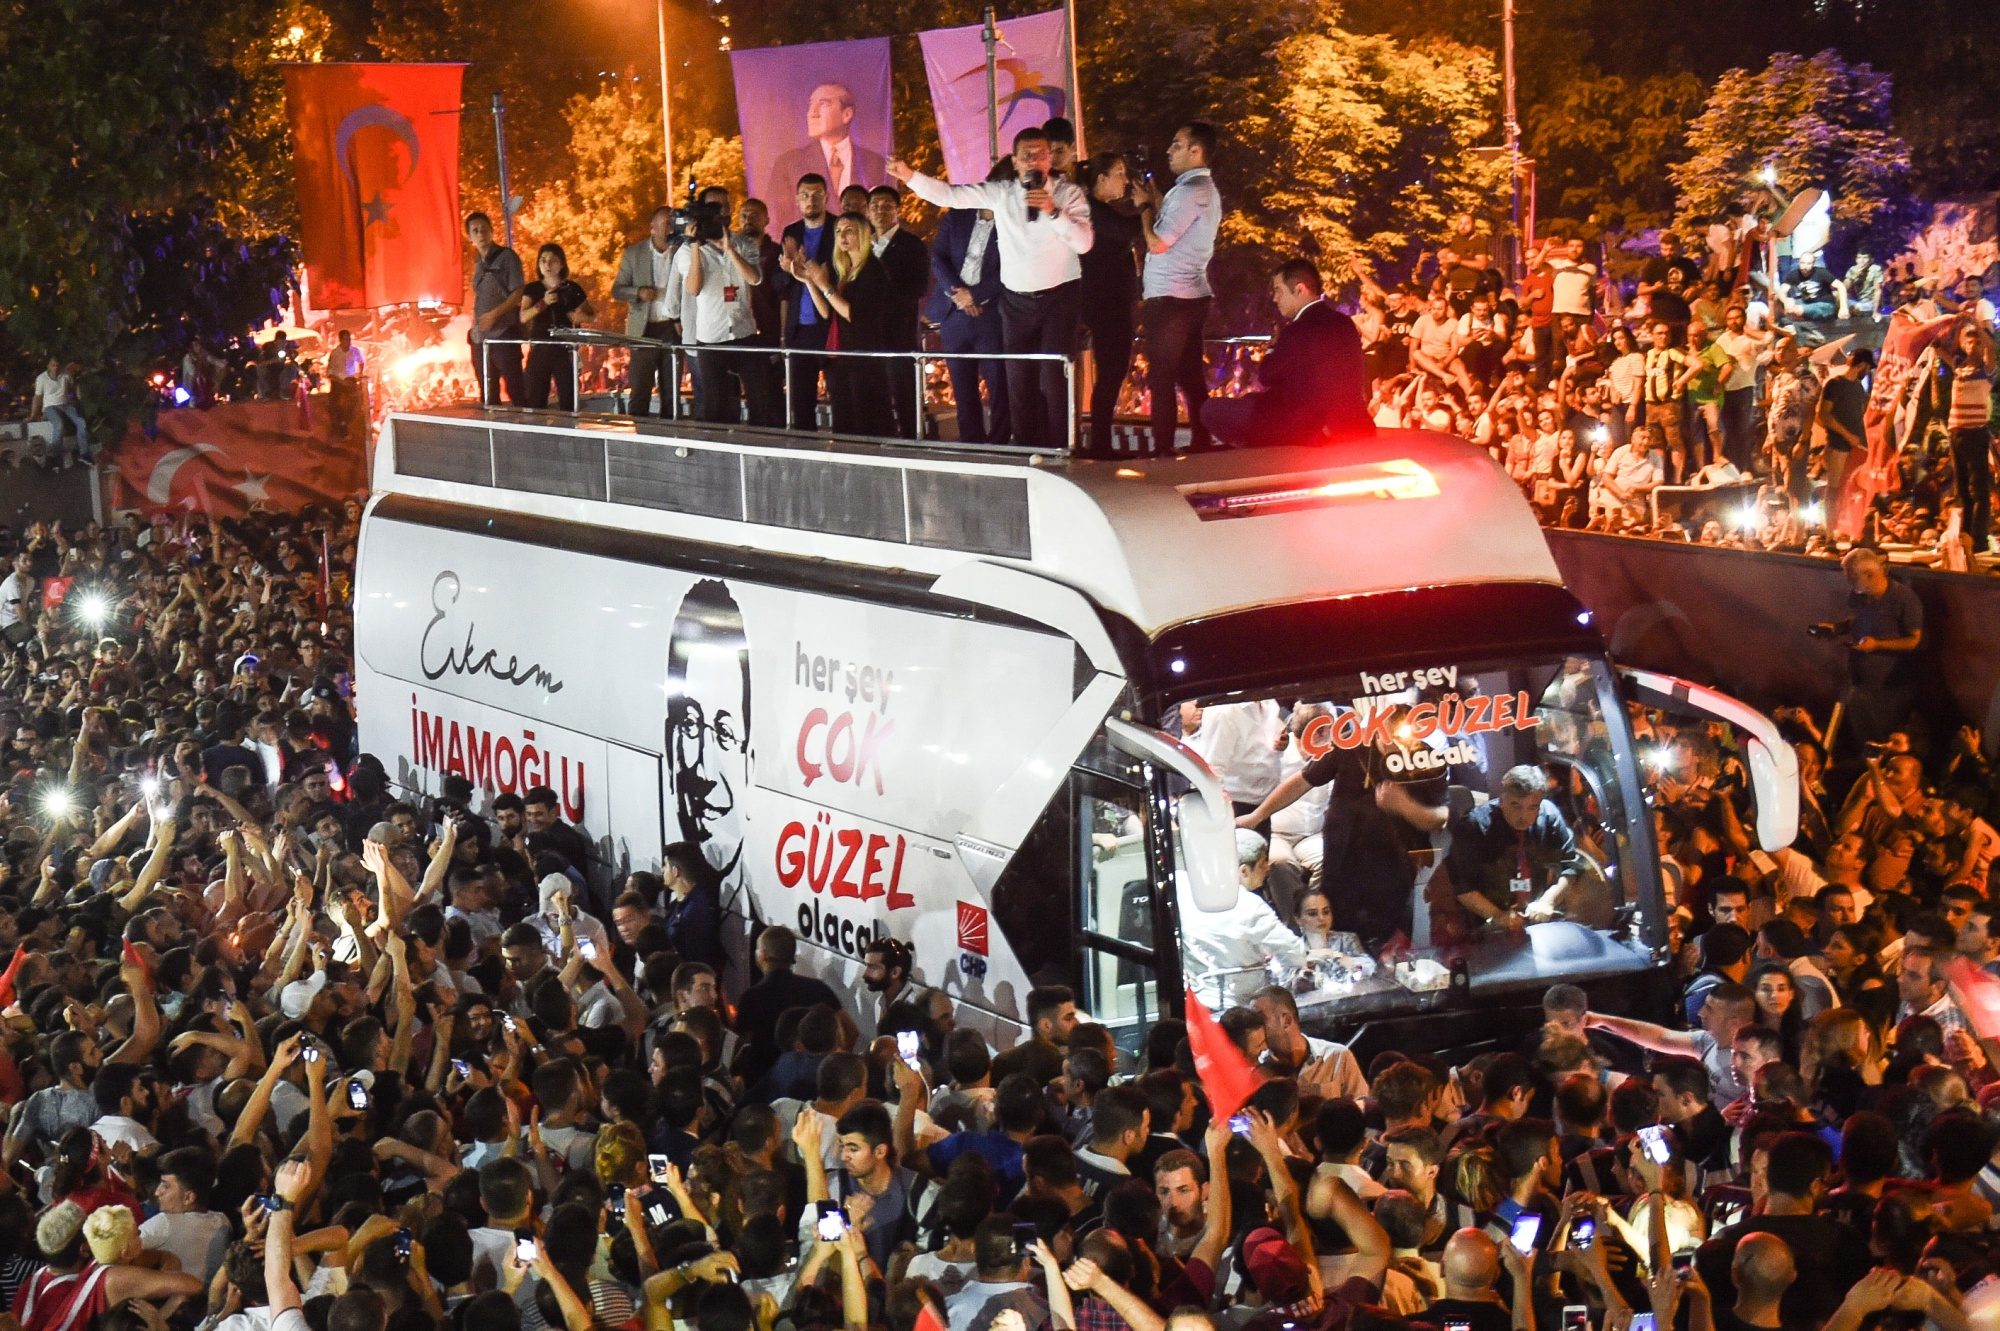 The Man Who Defied Erdogan to Take Istanbul Says It'll Be 'Great'